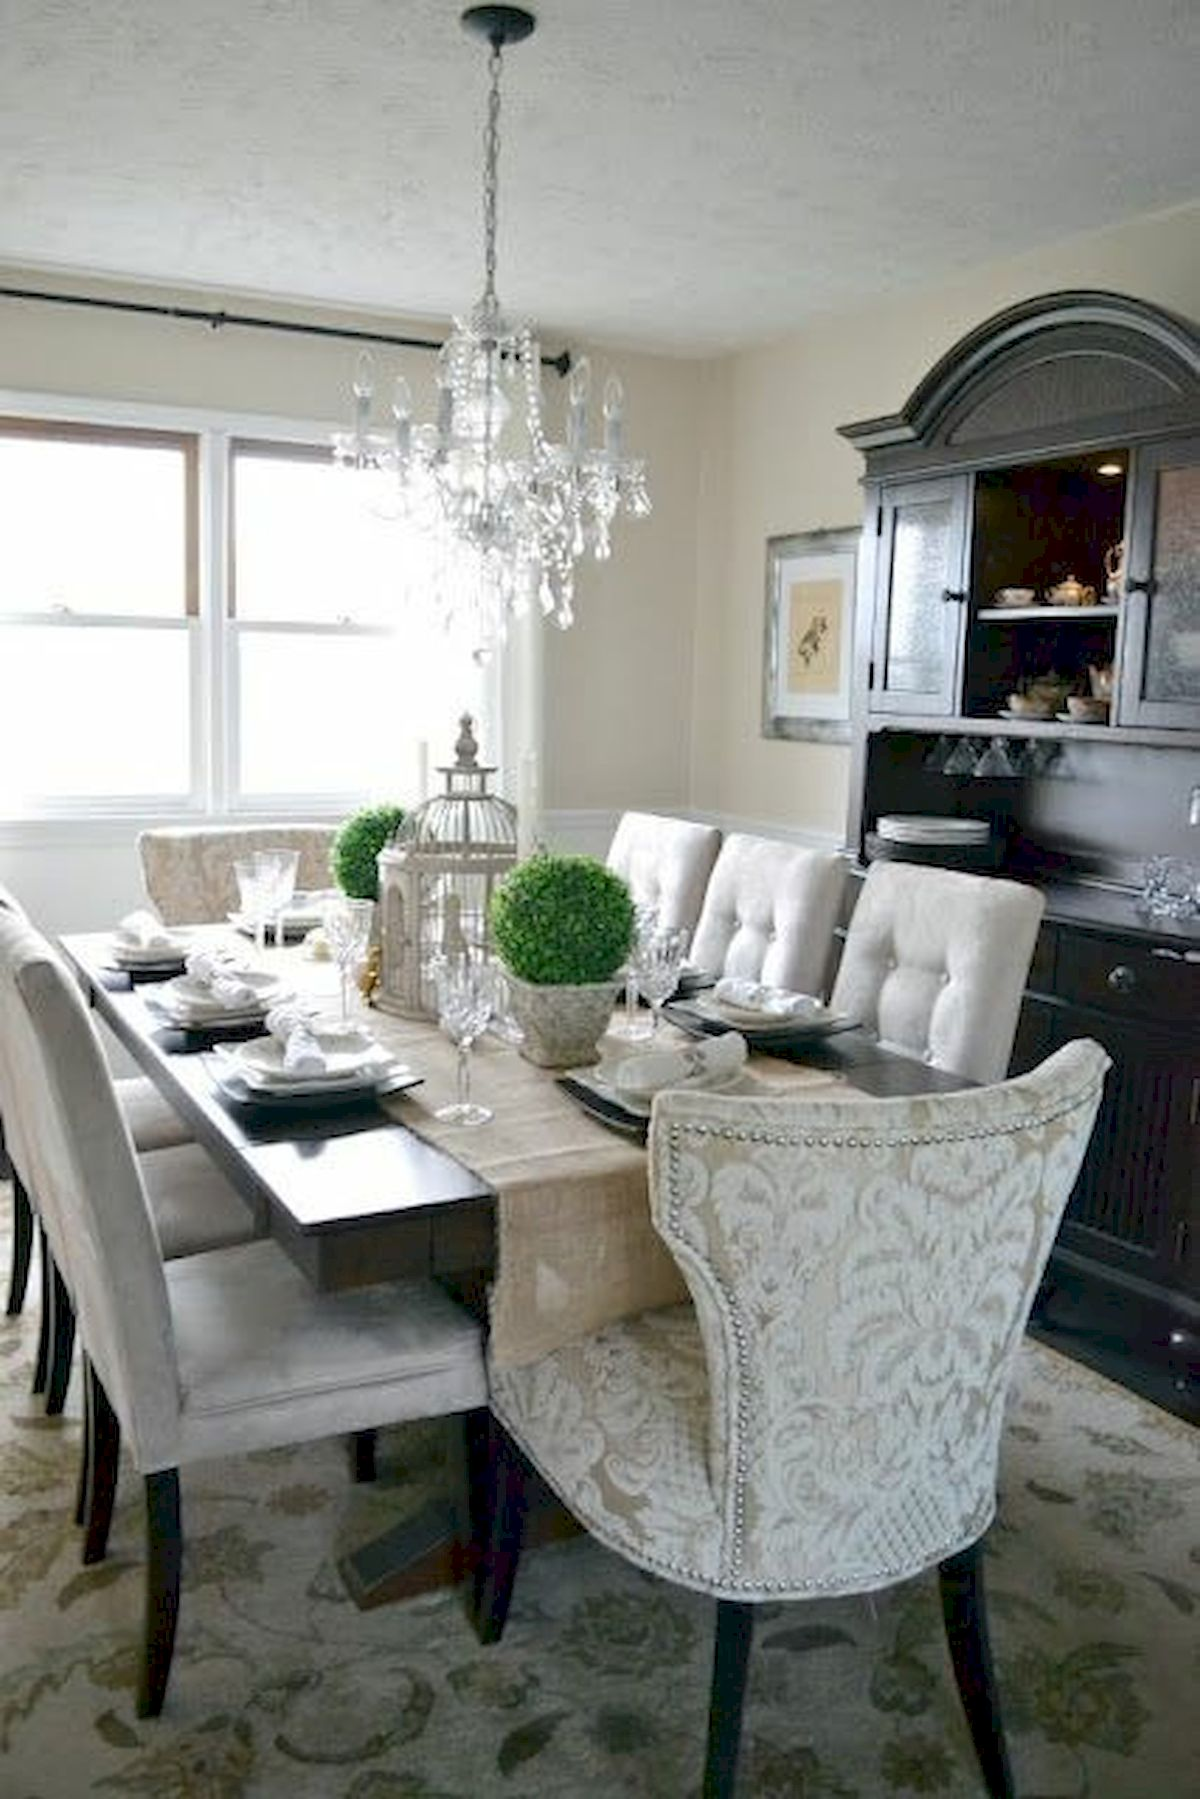 50 Gorgeous Dinning Room Design and Decor Ideas (17)